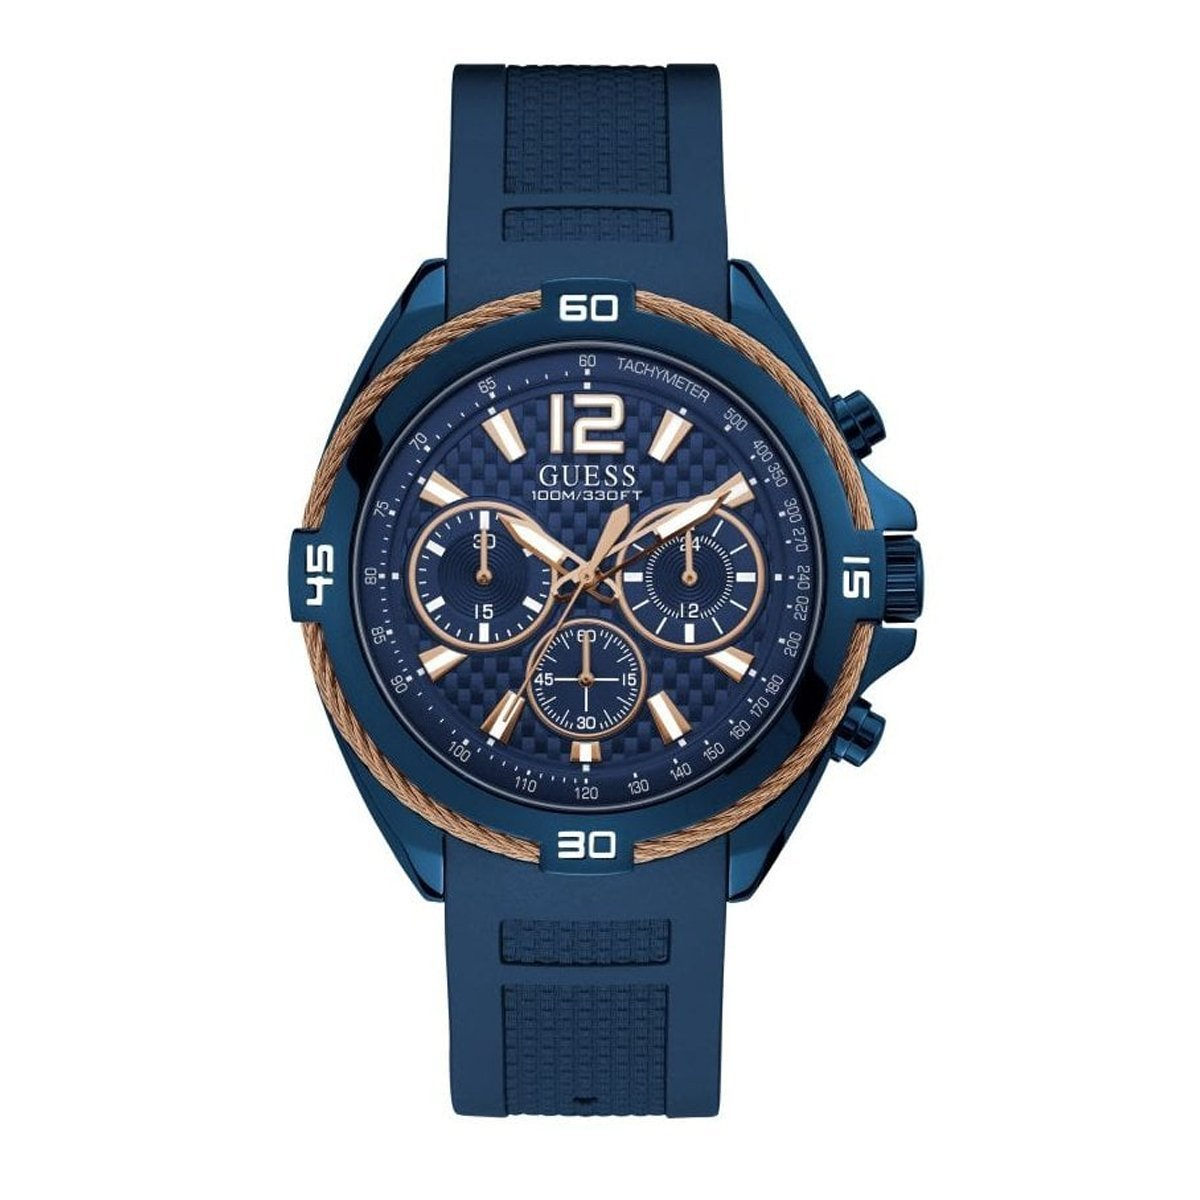 Guess Surge Chronograph Blue - Watches & Crystals